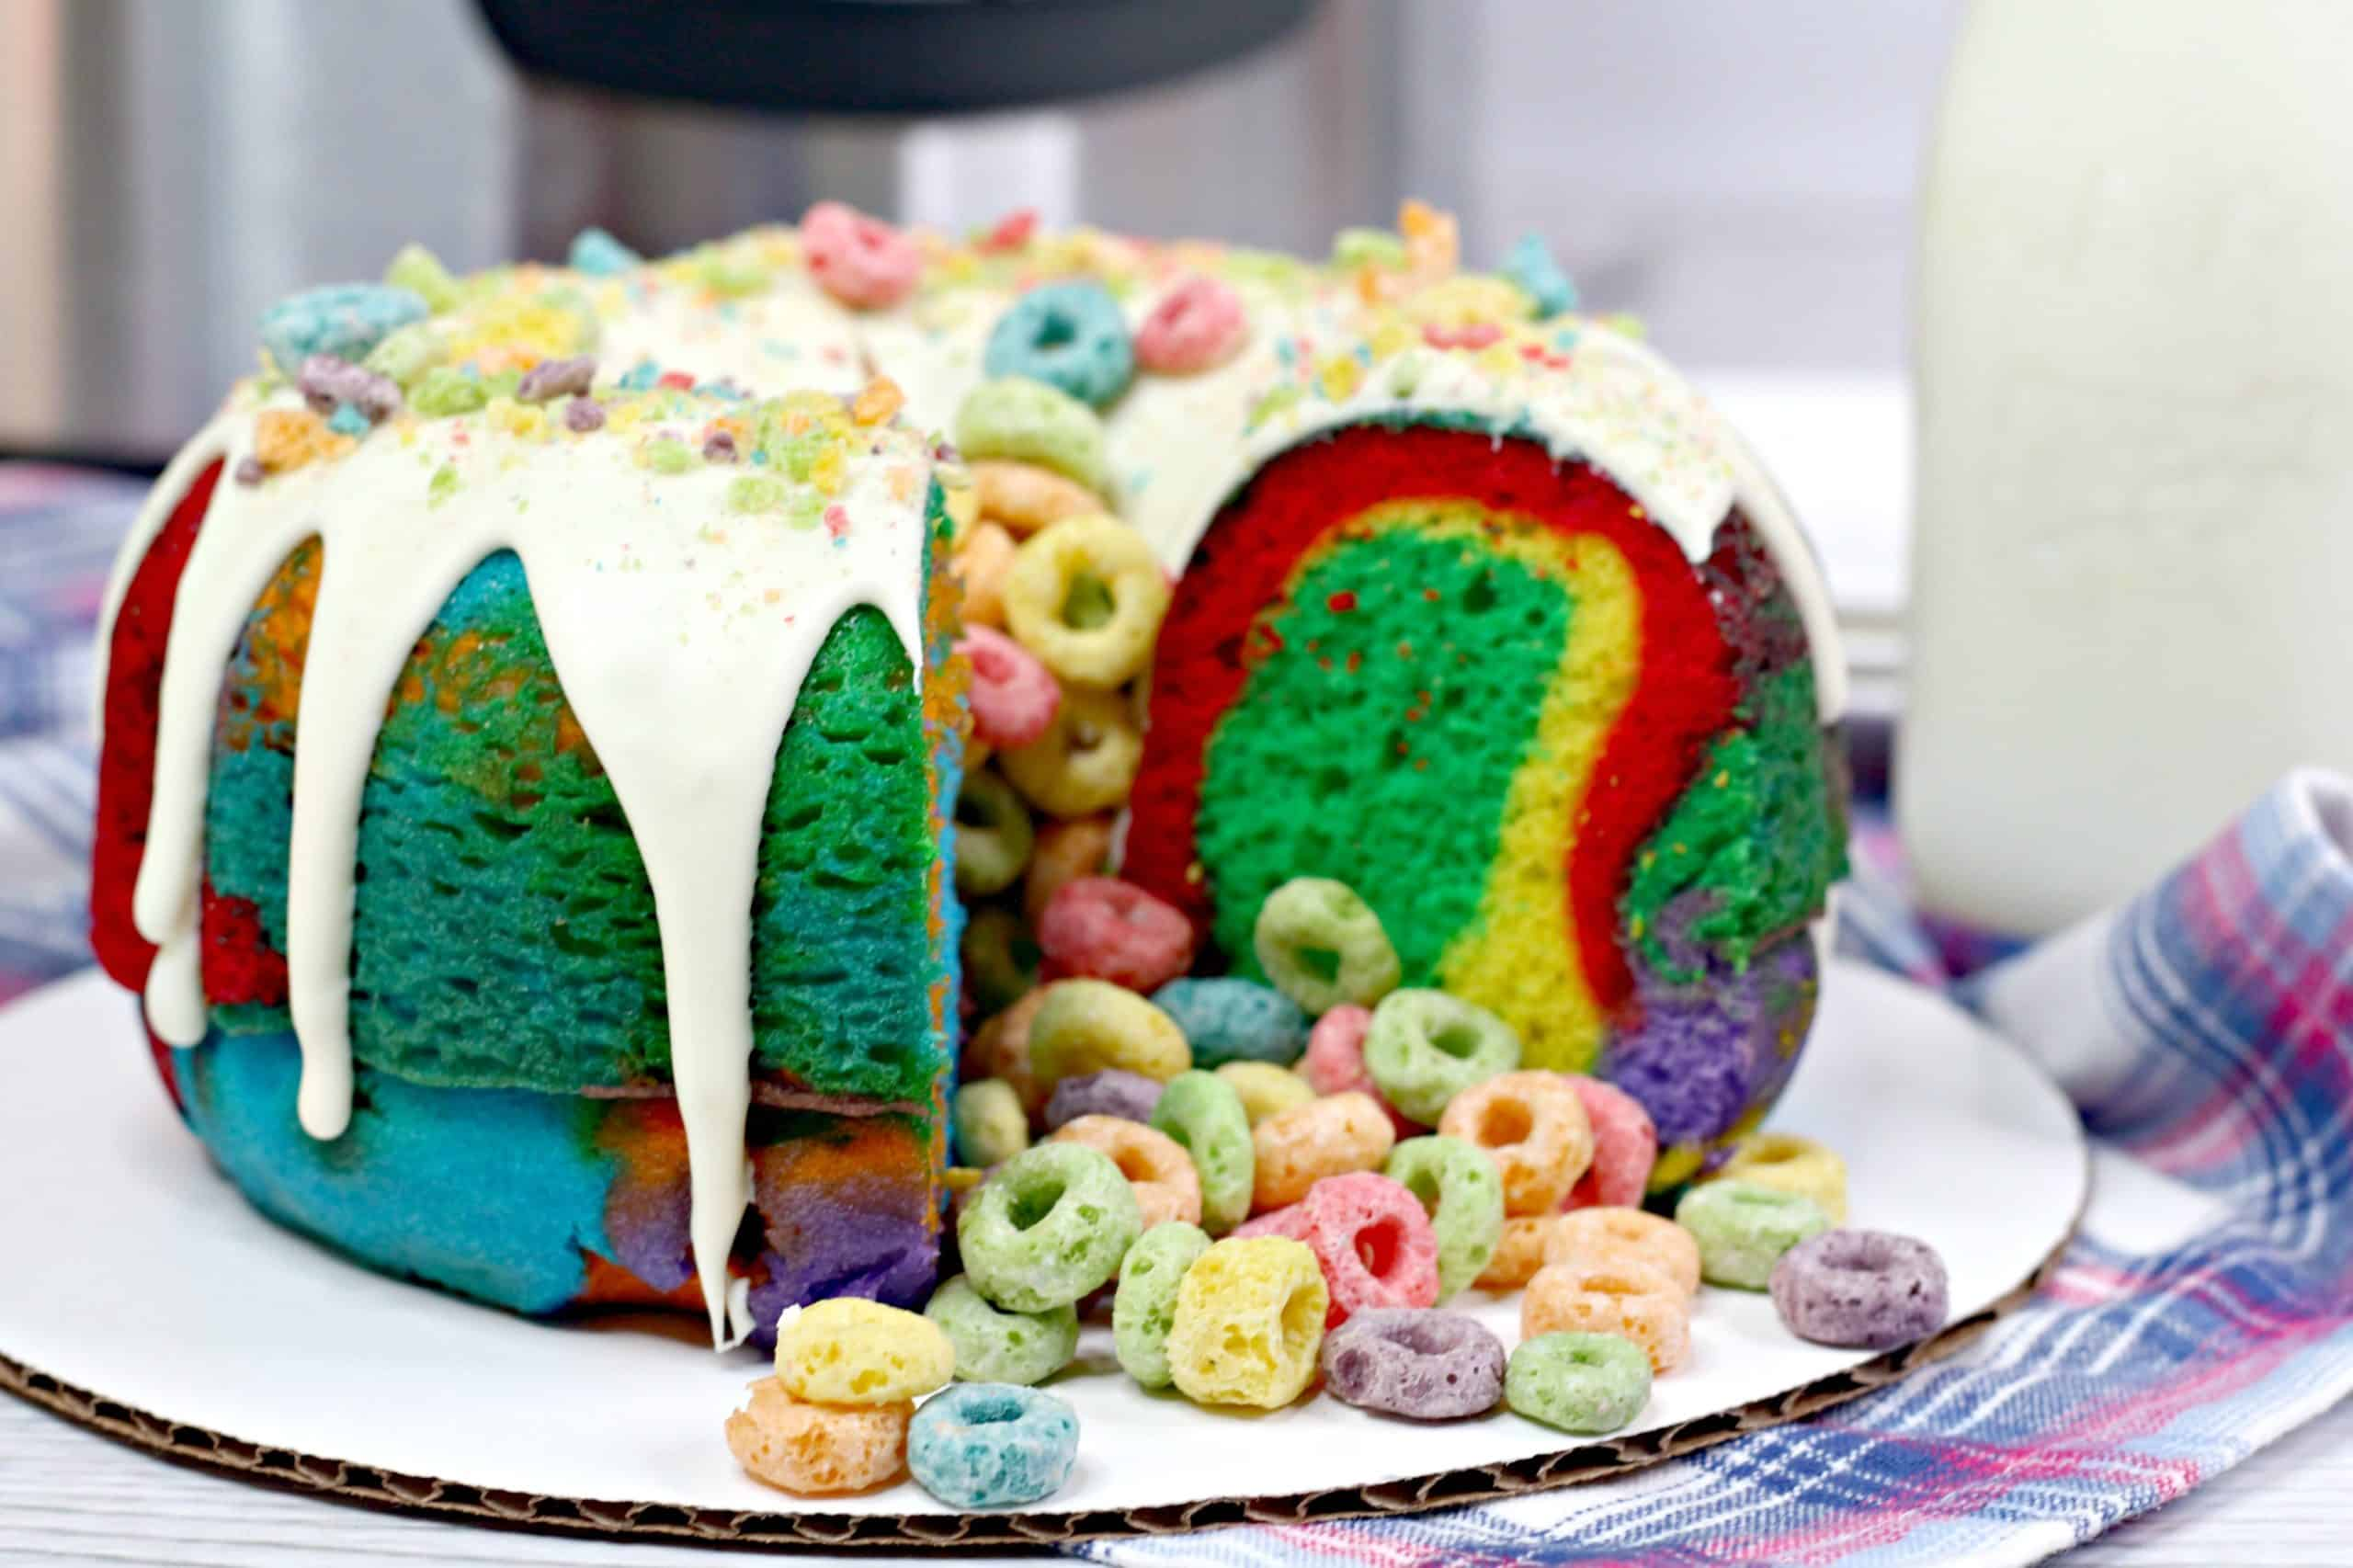 This Instant Pot rainbow Bundt cake has a crunchy surprise: colorful Fruit Loops! It's easier to make than you think. Here's how.